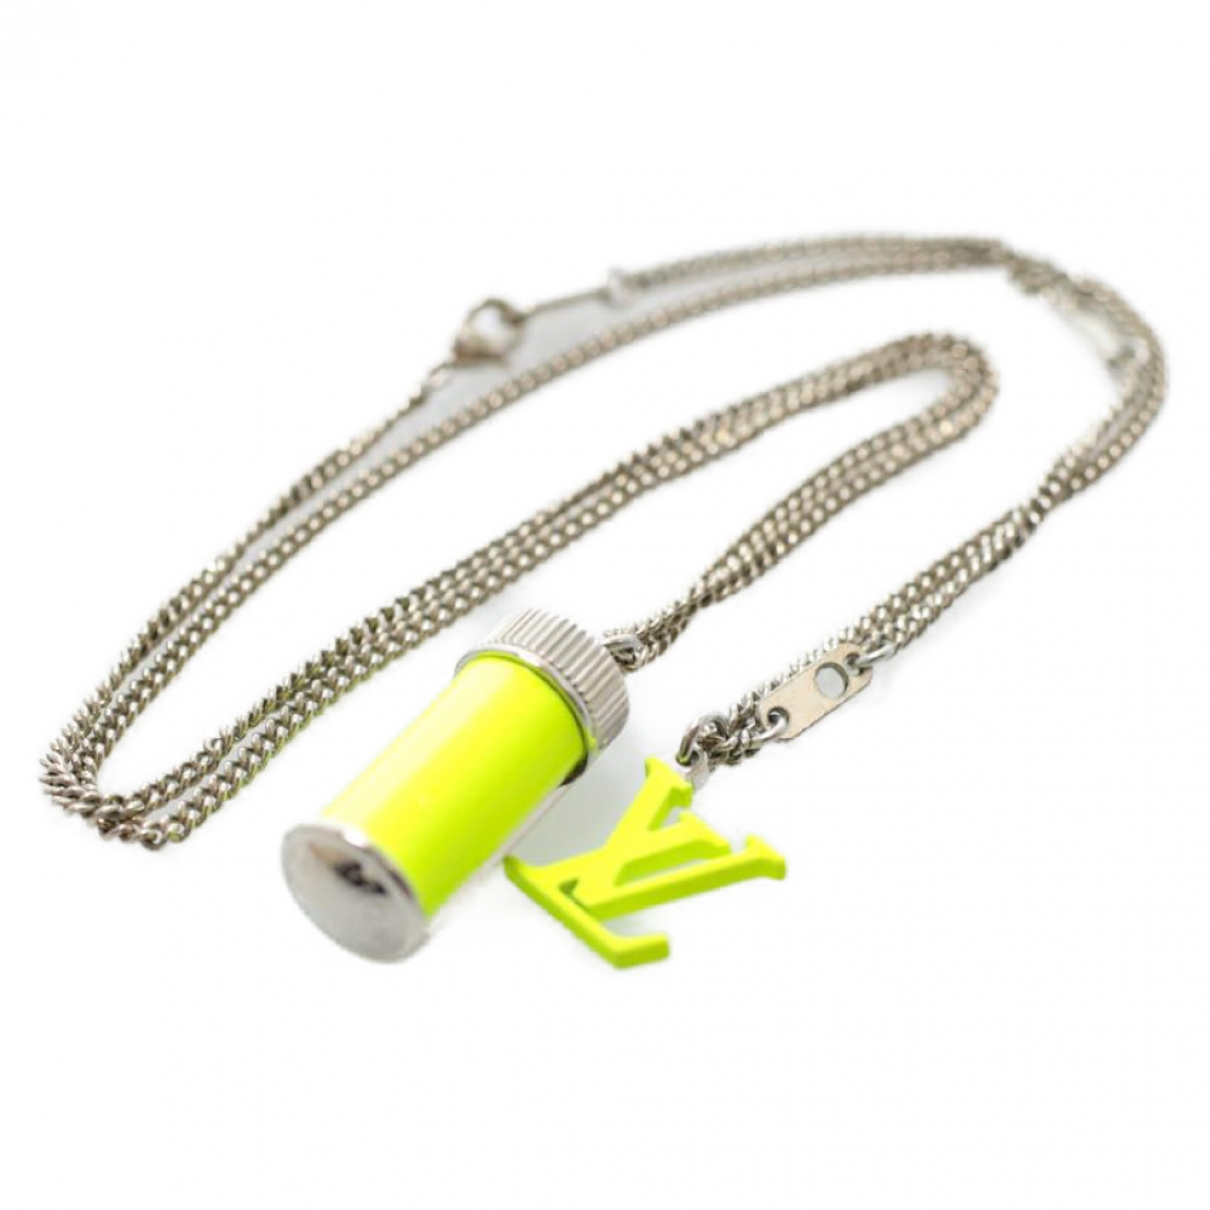 Louis Vuitton - Collier   pour femme en metal - jaune